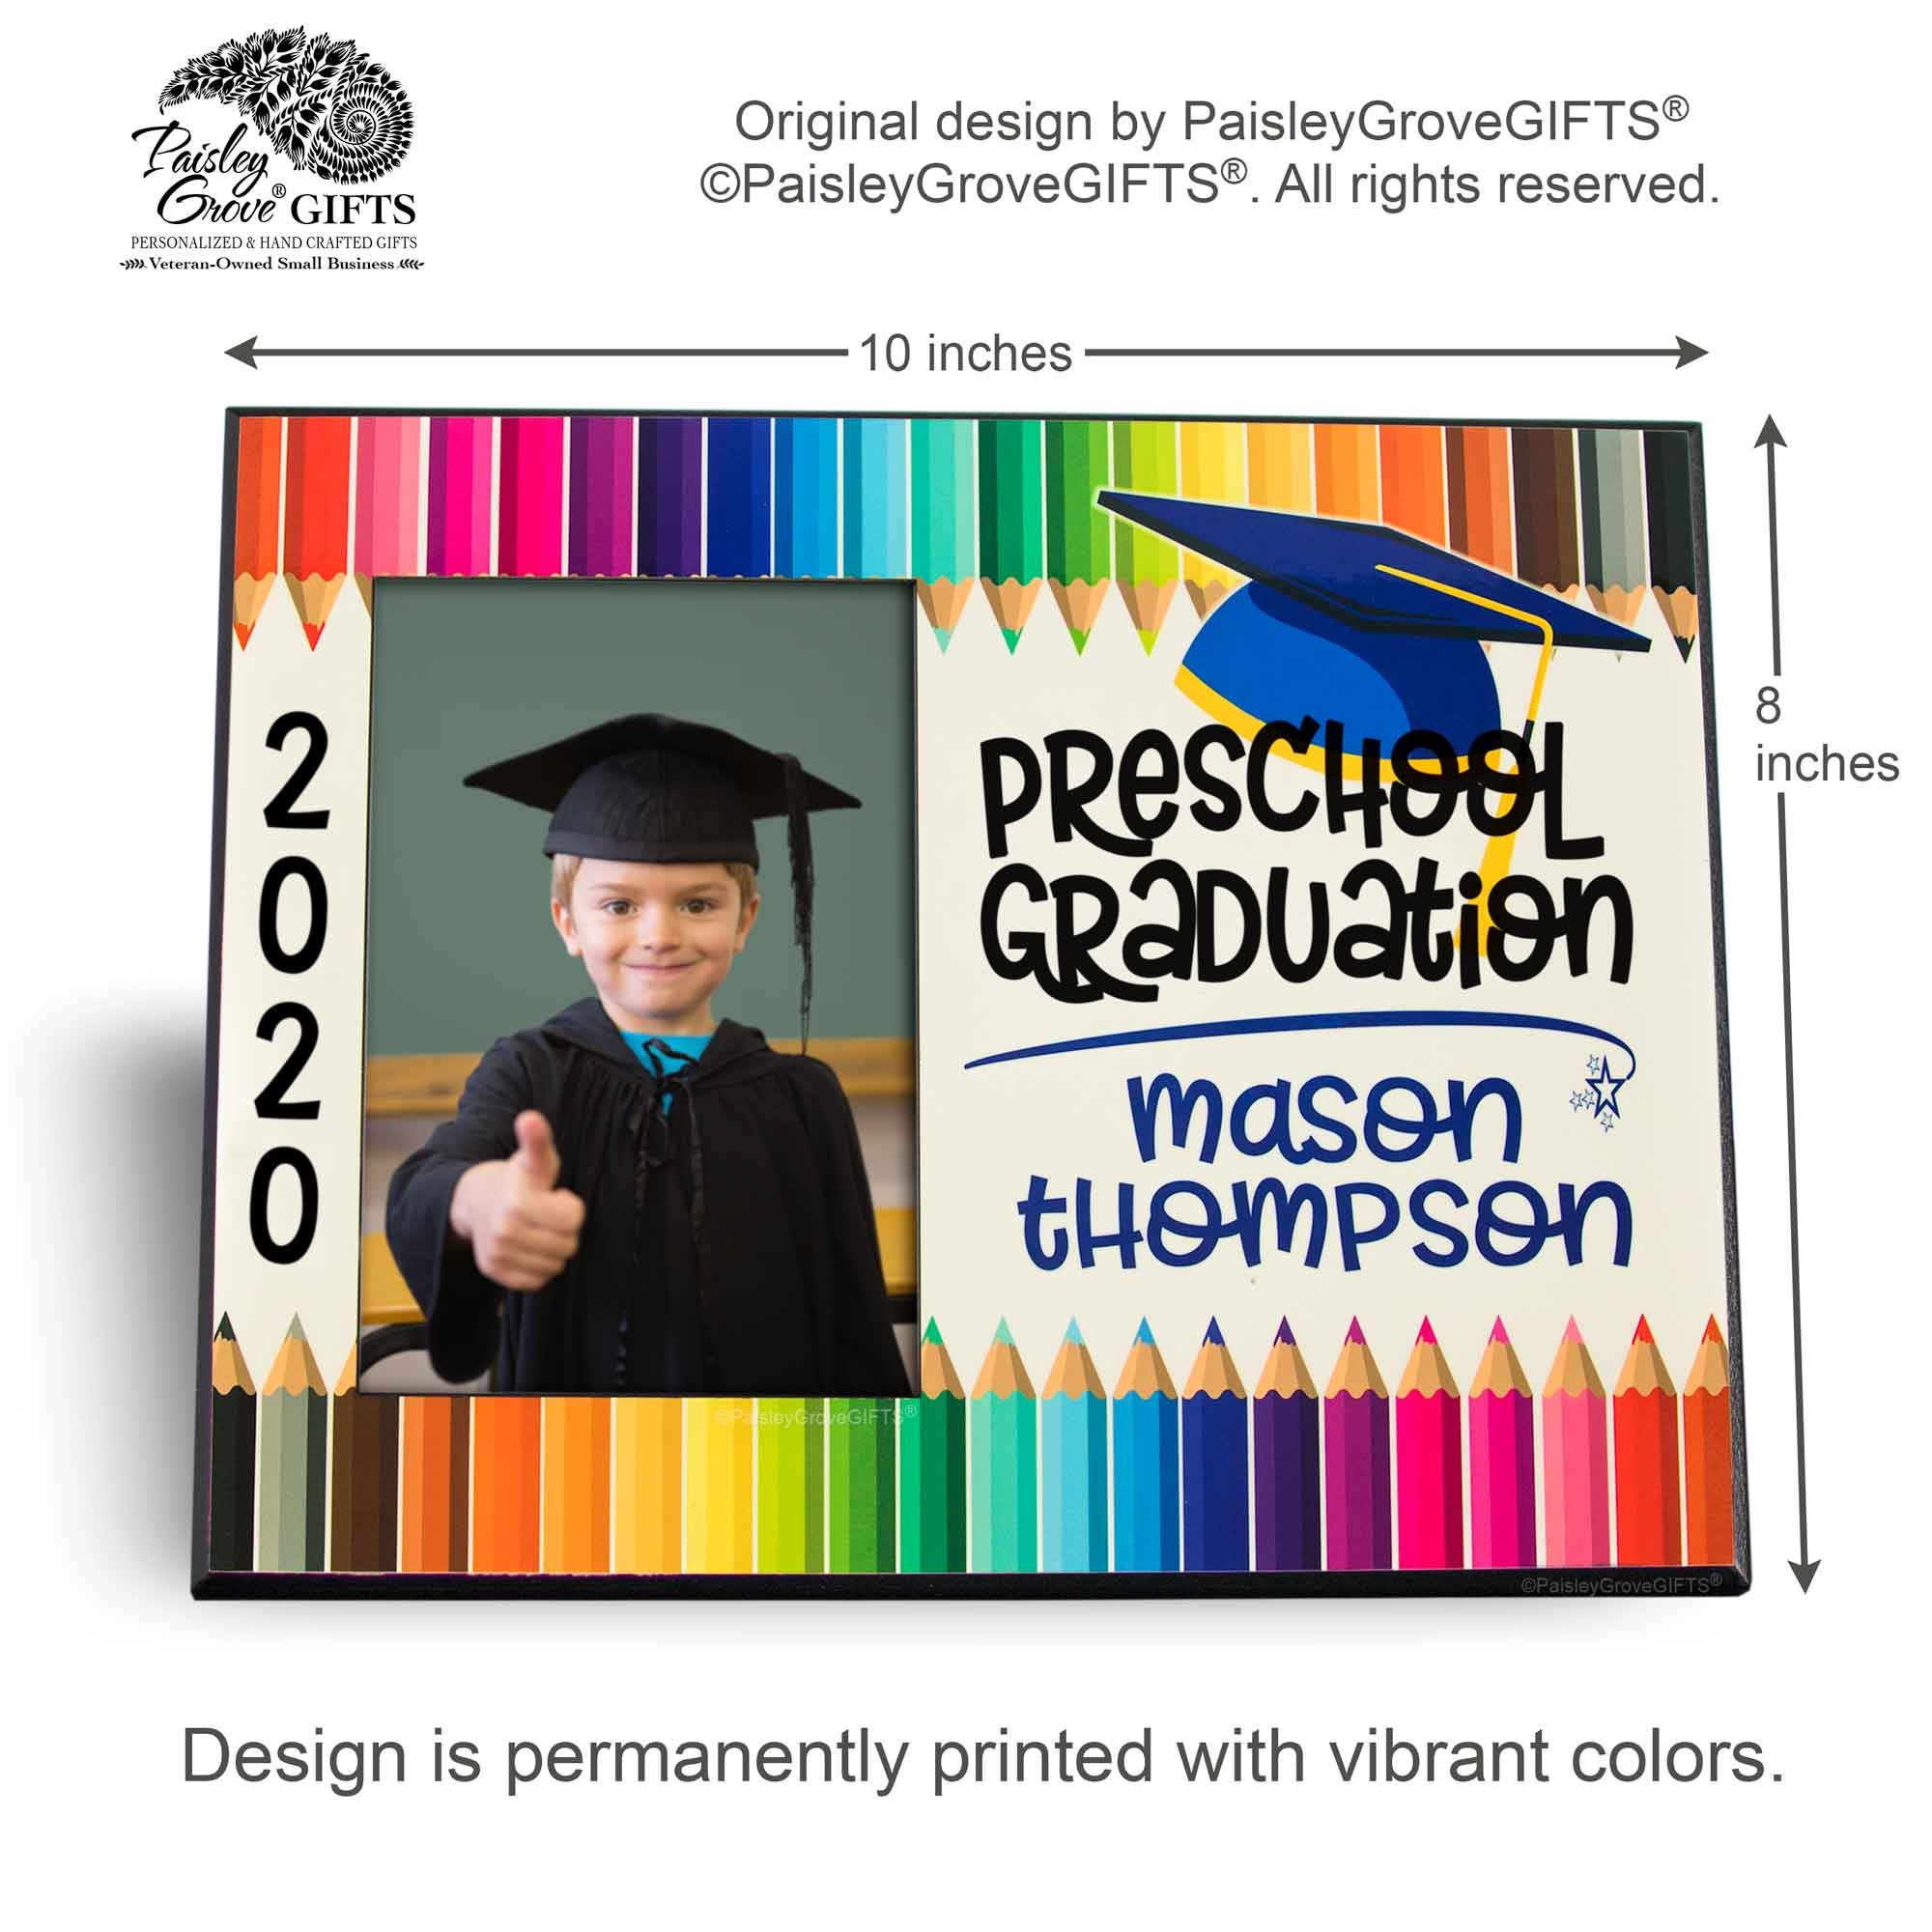 CopyrightPaisleyGroveGIFTS S228c Measurements for Customized Graduation Keepsake Preschool Graduate Frame